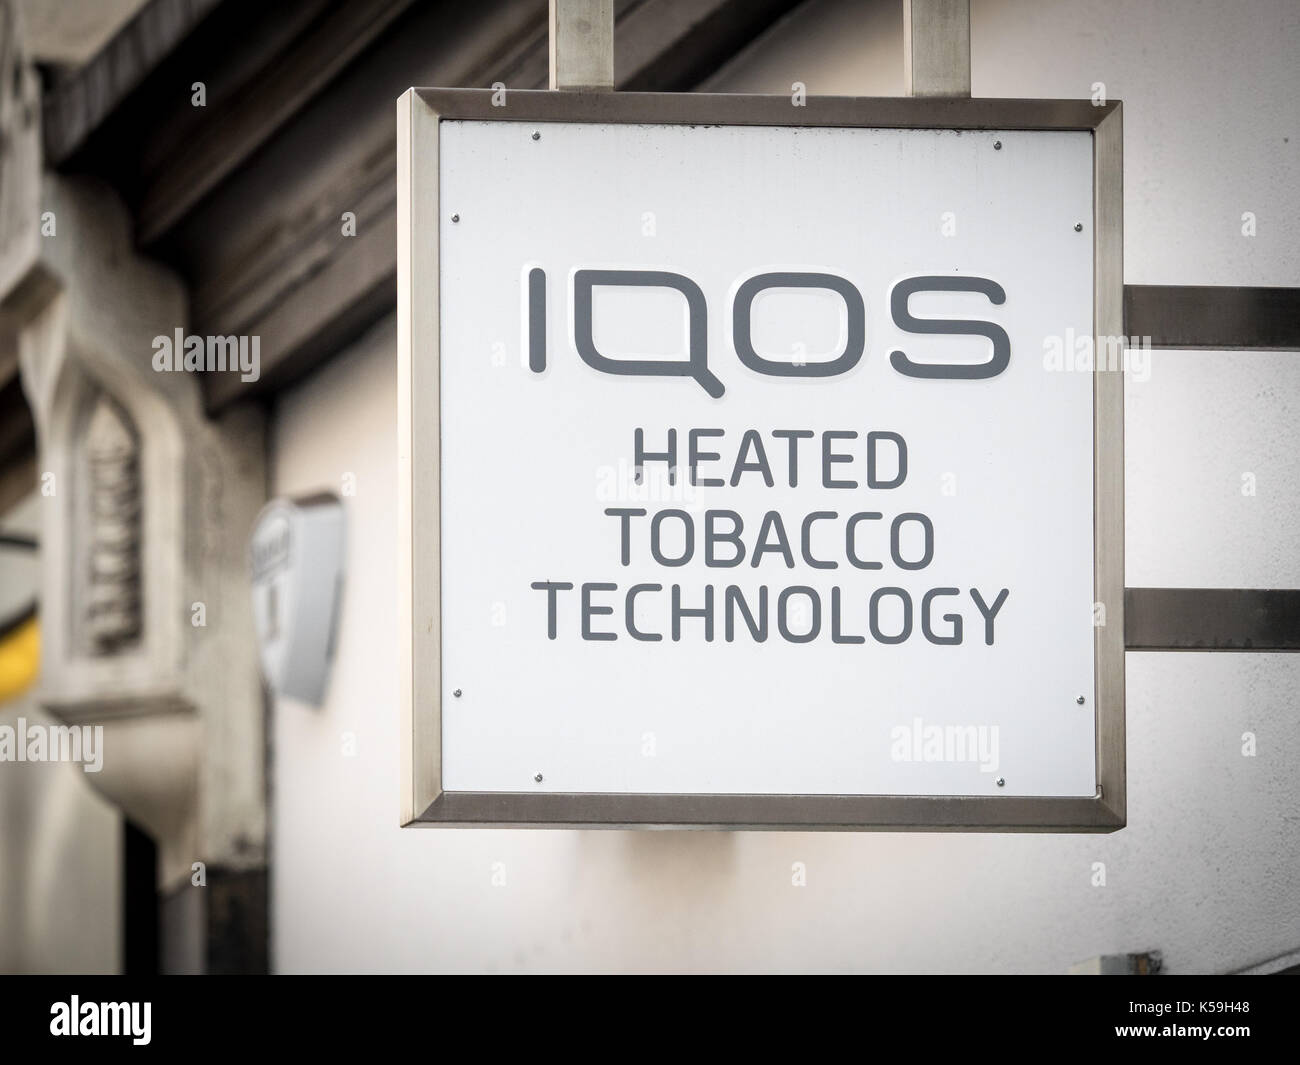 IQOS Technology sign outside a shop in Soho London - IQOS is marketed by Philip Morris International and is a heat-not-burn product - Stock Image